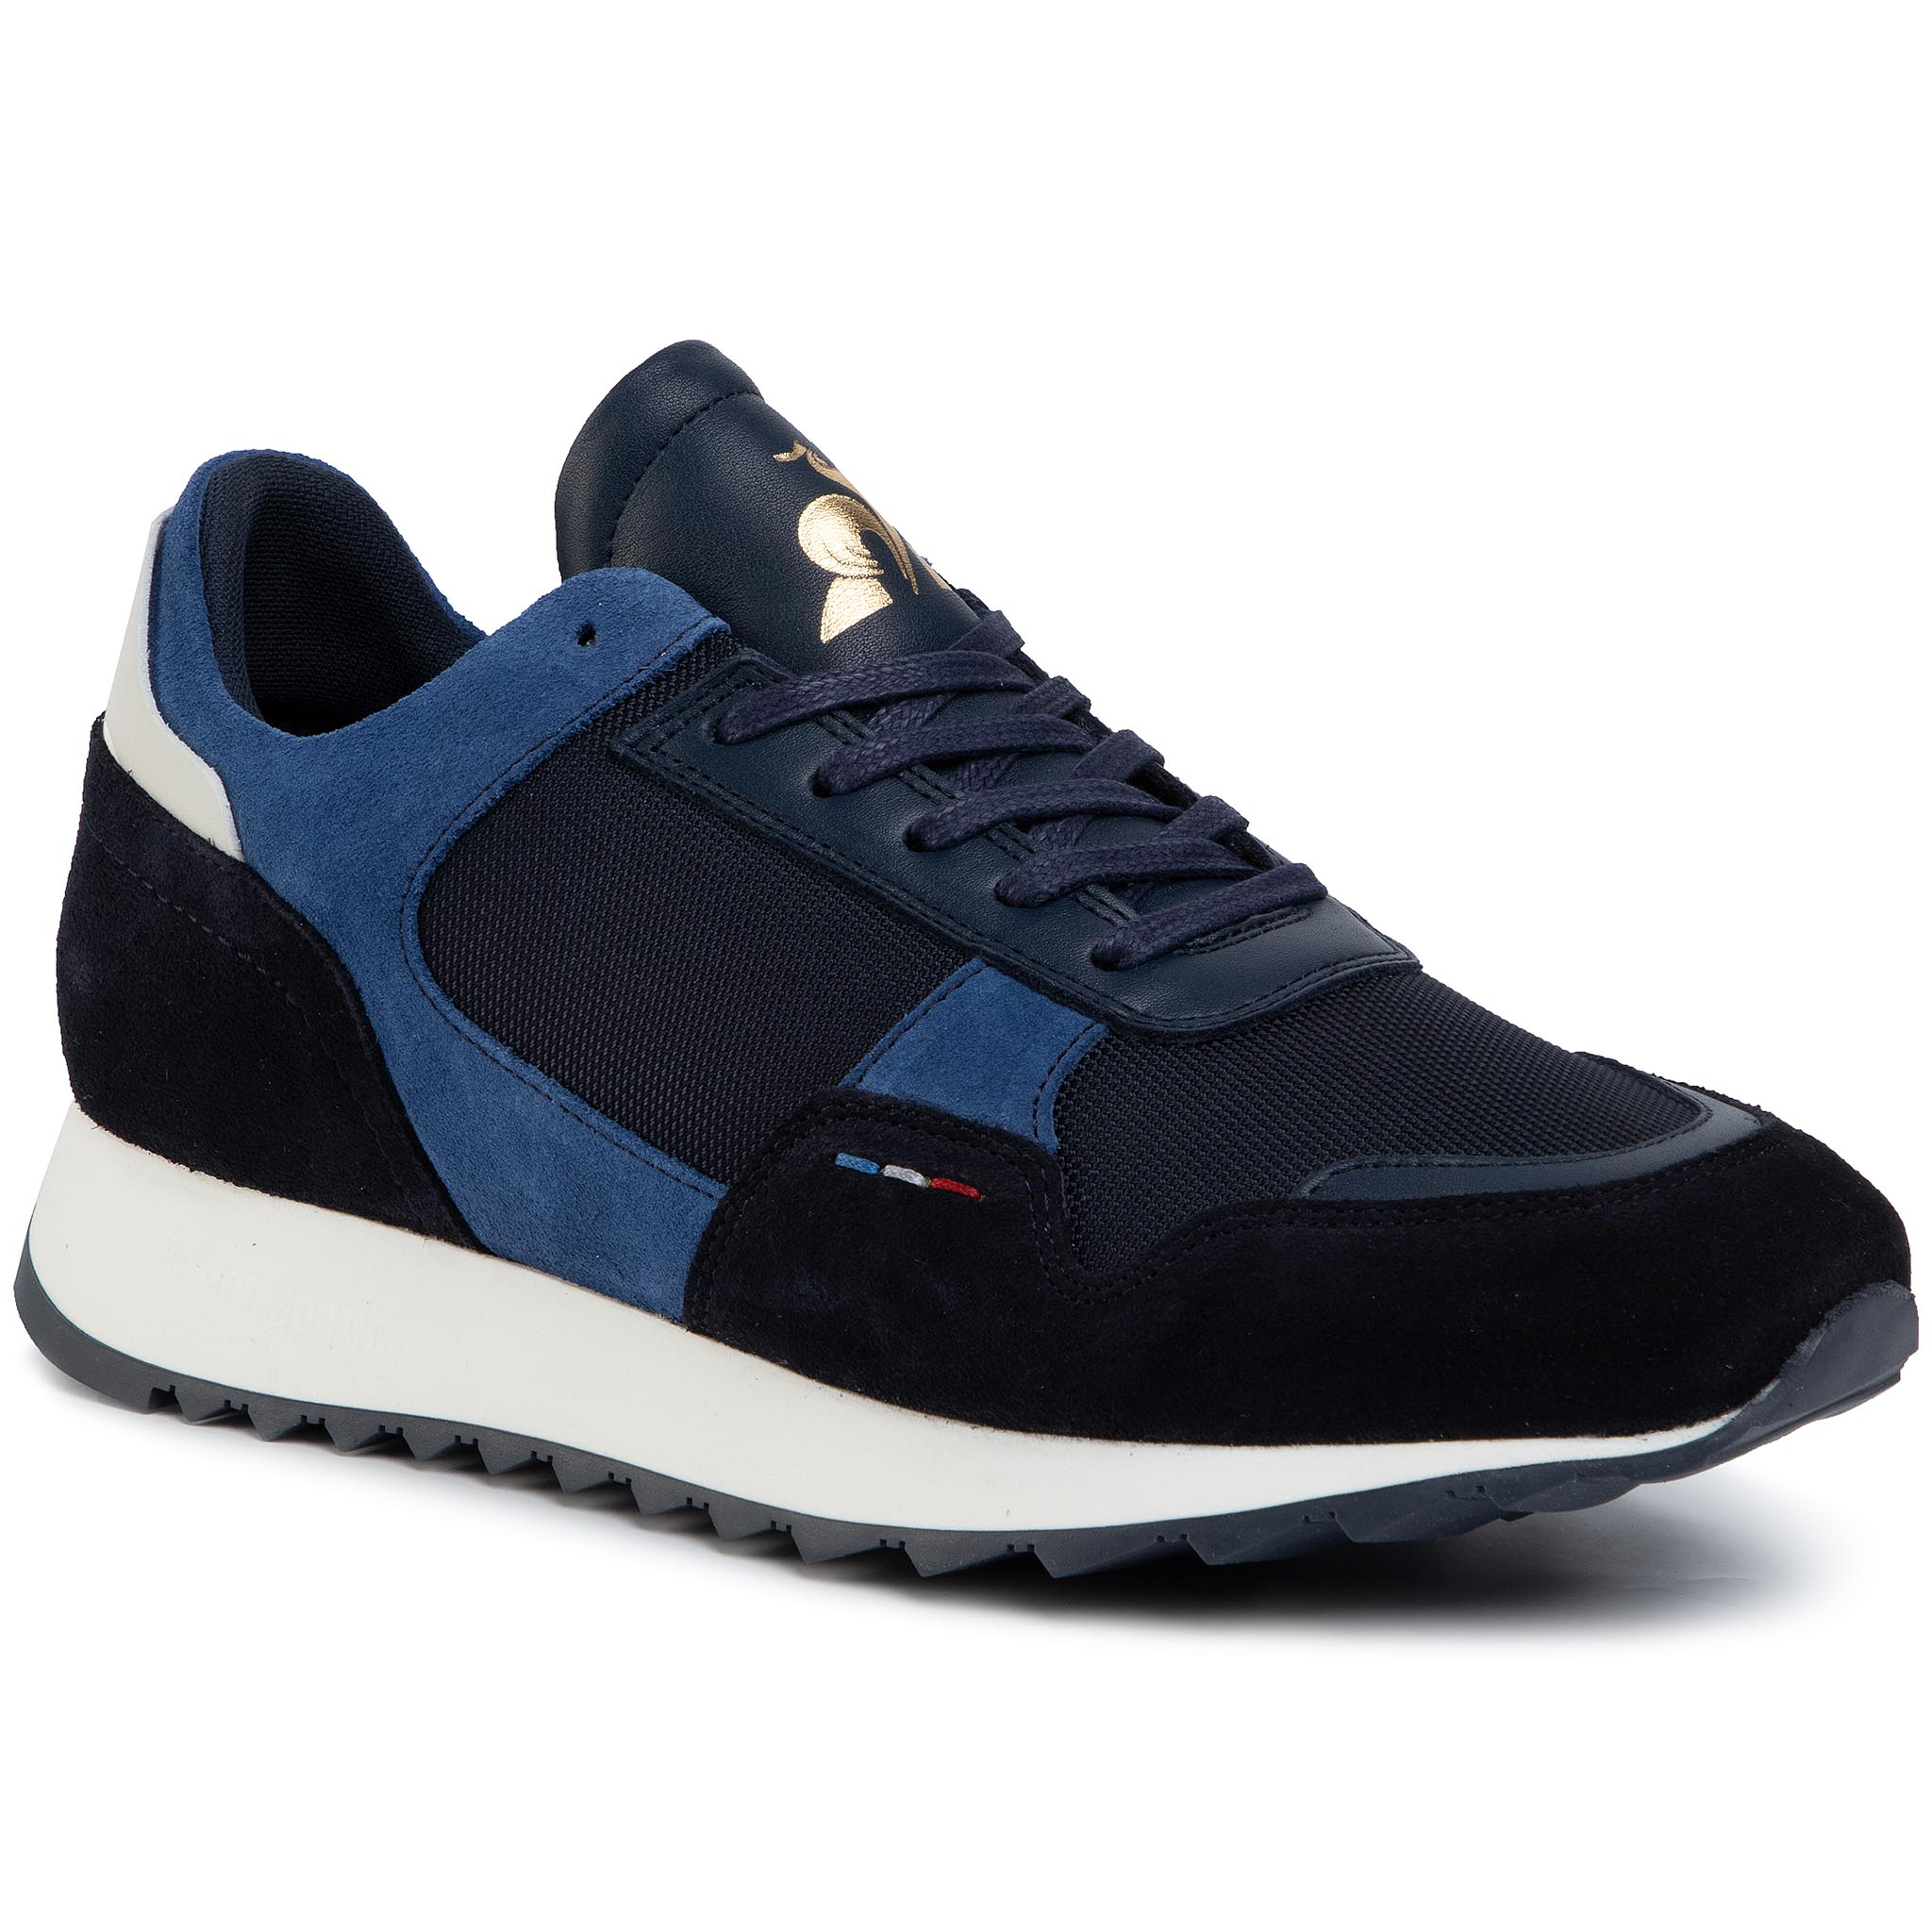 Sneakers LE COQ SPORTIF - Challenger 1920726 Navy/White